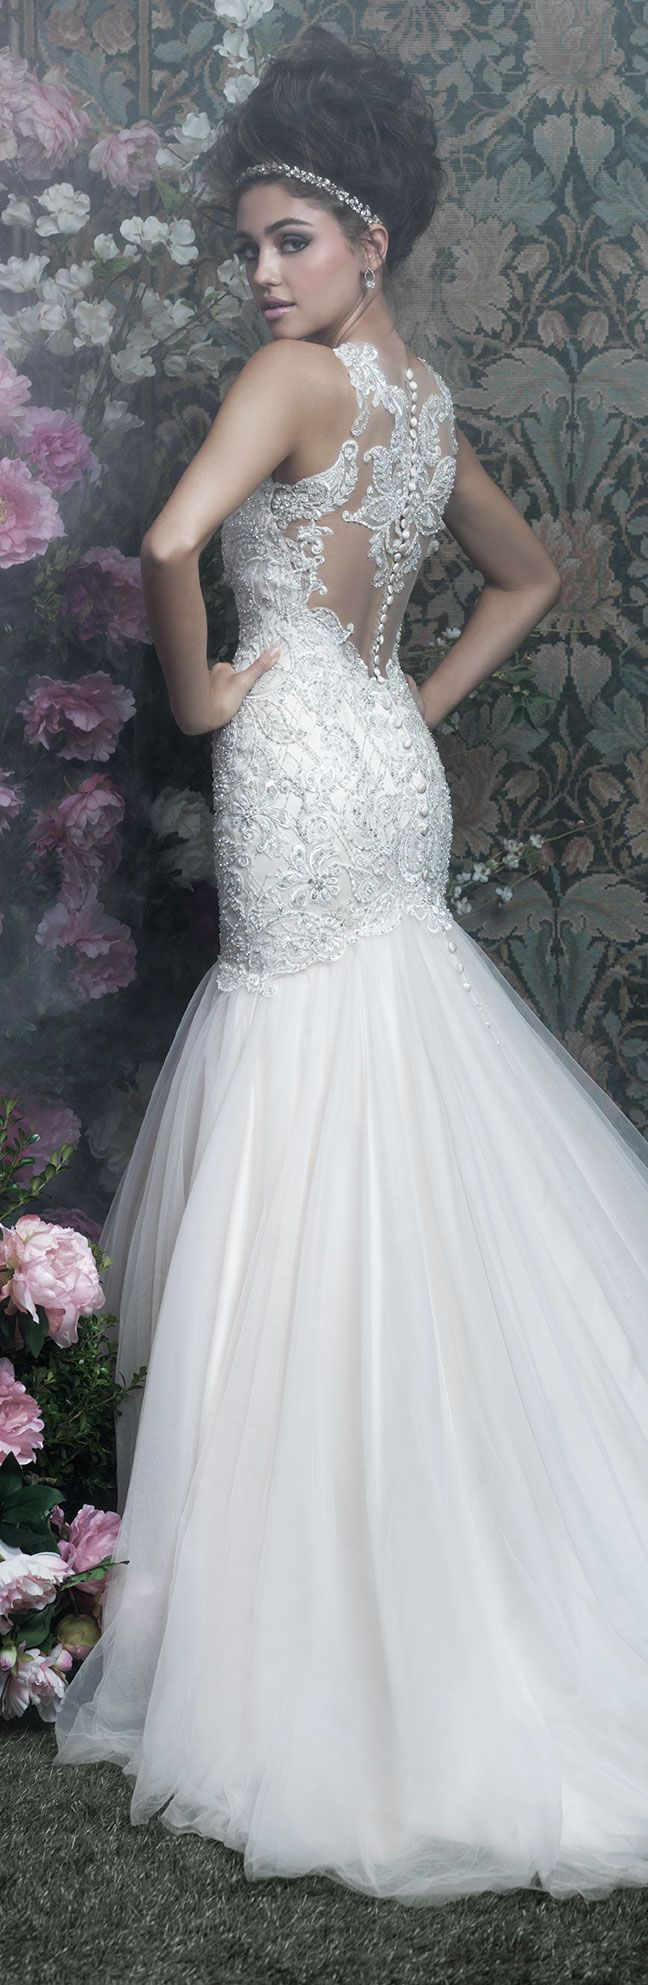 Wedding Dress by Allure Couture 2017 Bridal Collection | @allurebridals